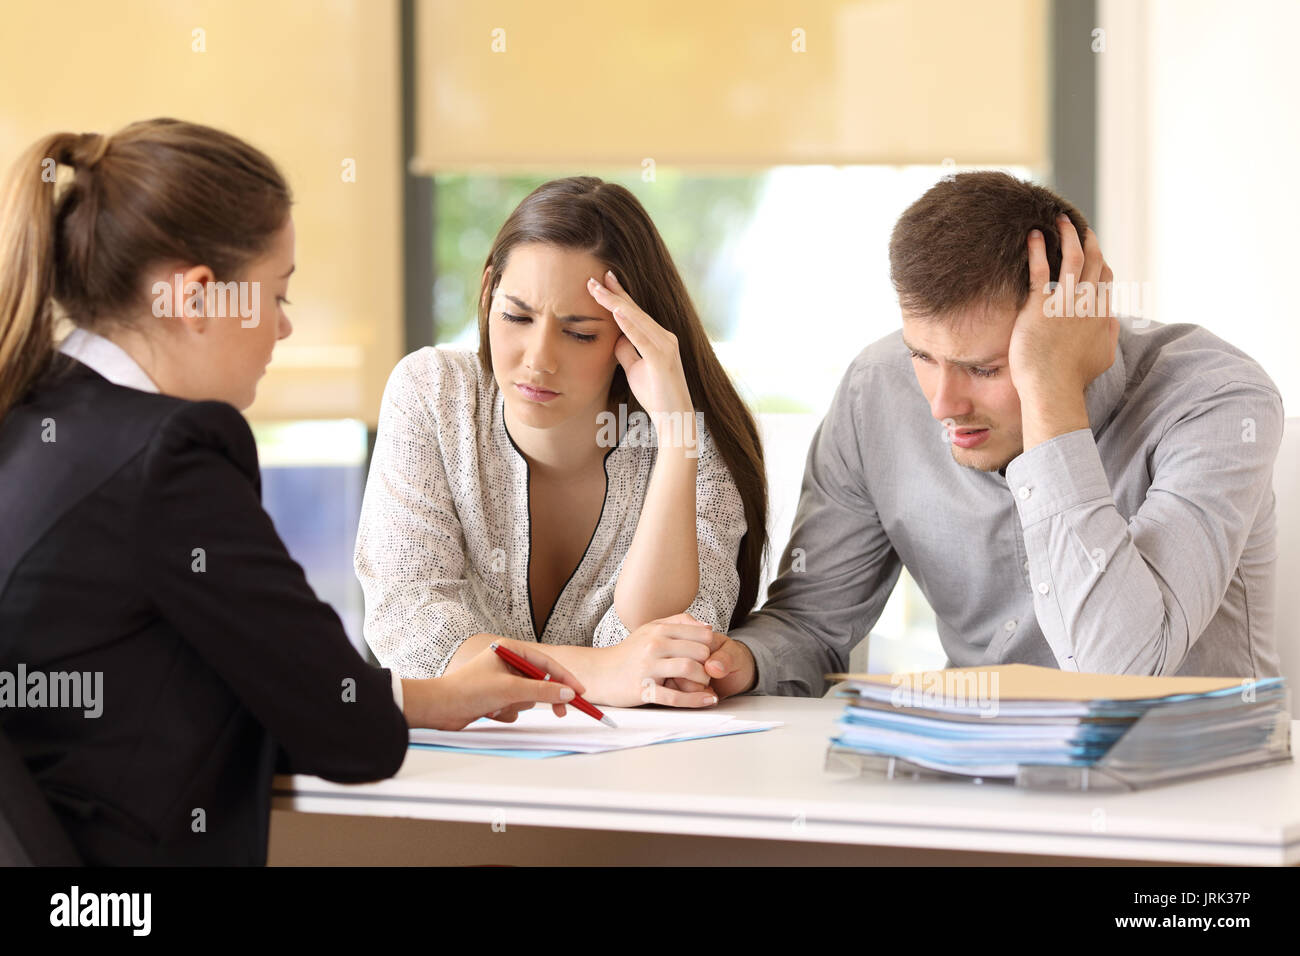 Saleswoman explaining conditions of a document with bad news to a couple of worried customers at office - Stock Image